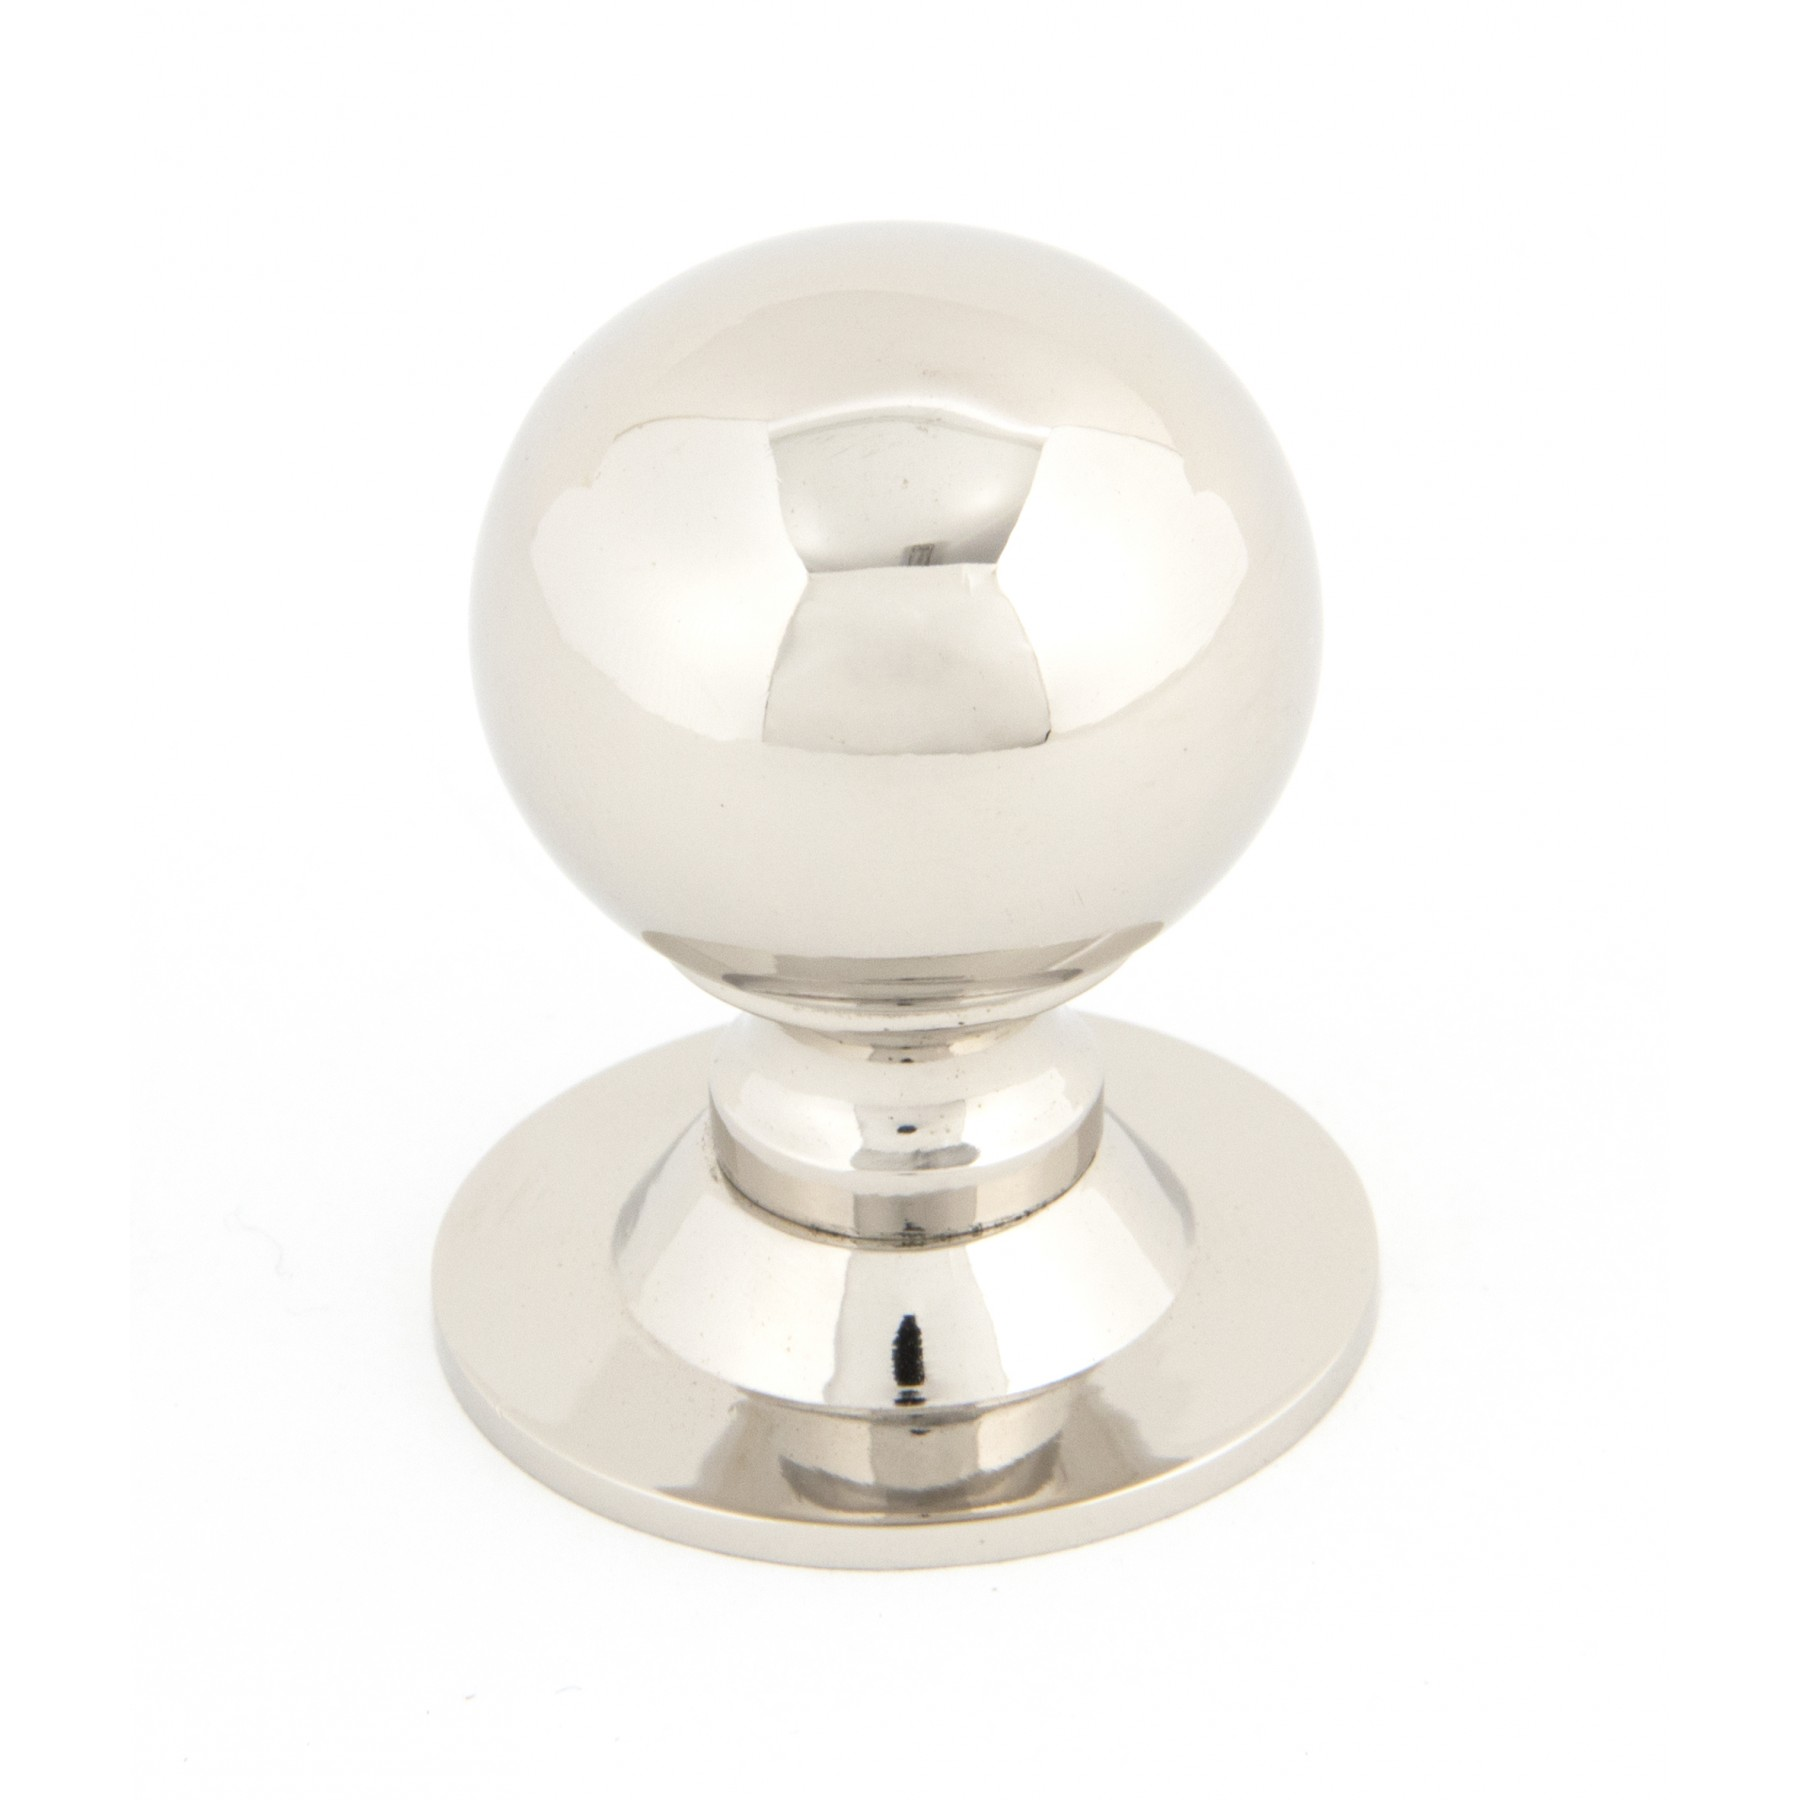 Small Polished Nickel Ball Cabinet Knob